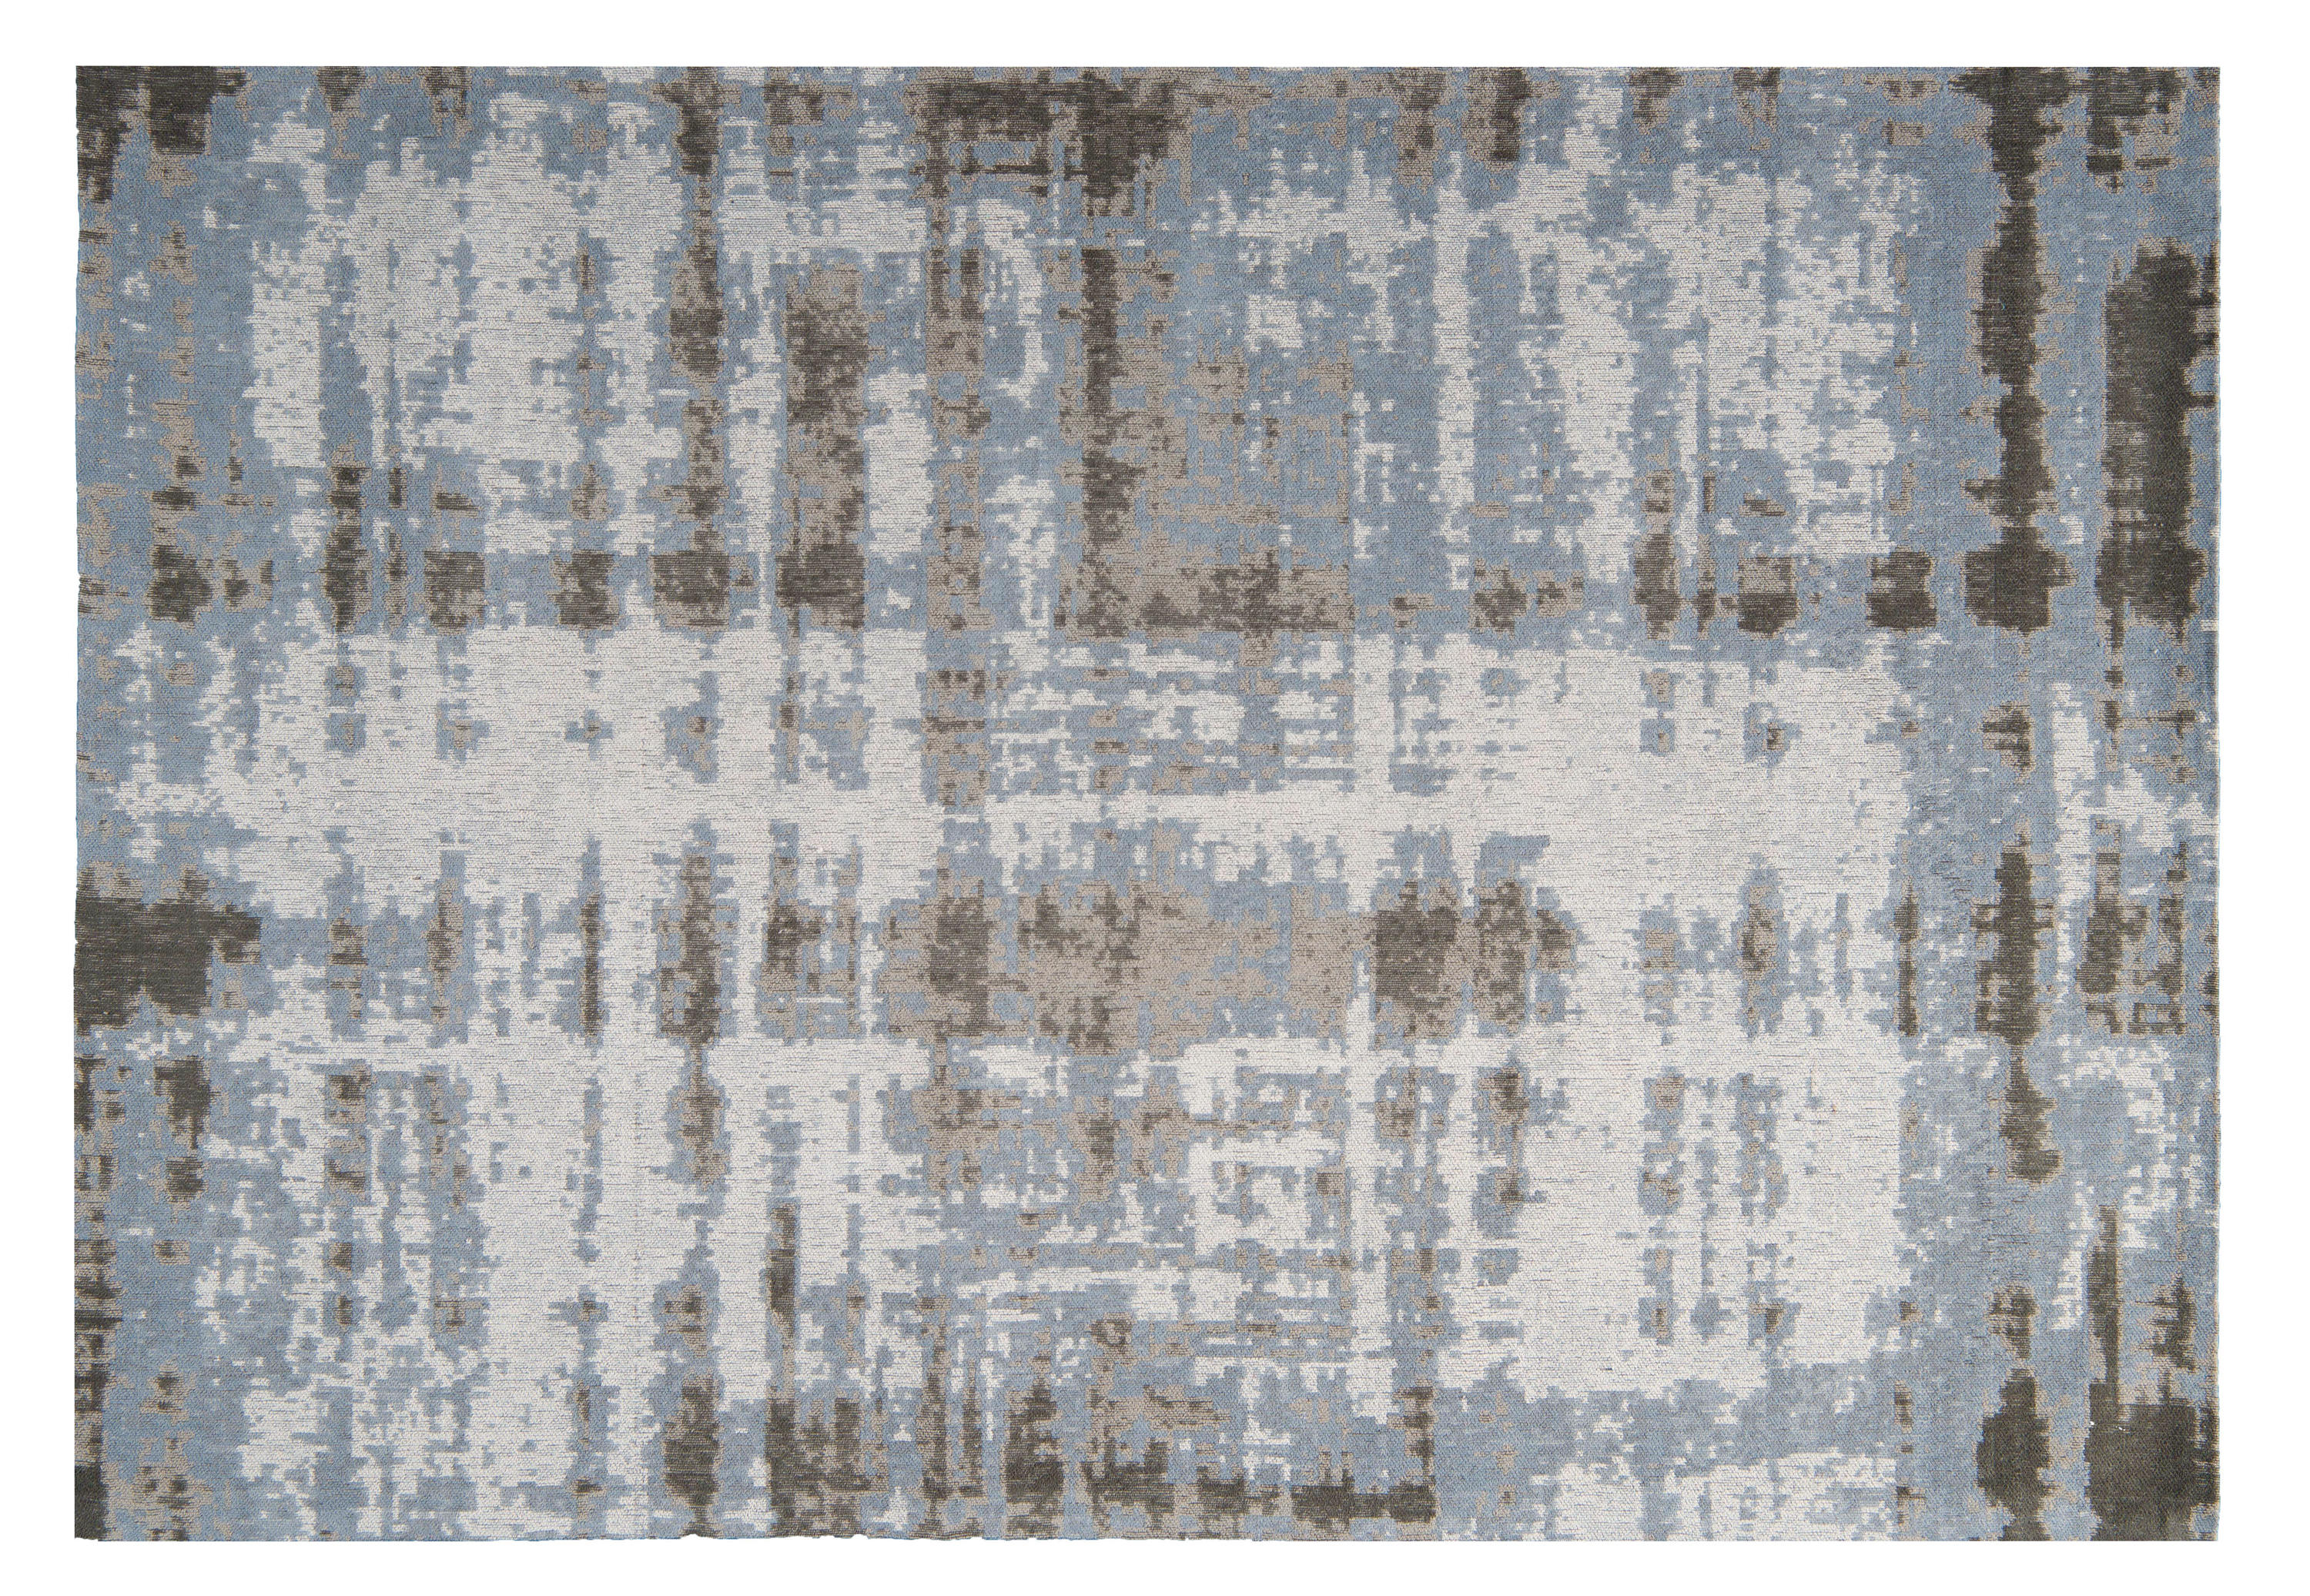 Beautiful Pixel Gris De Toulemonde Bochart Tapis Tapis Design With Tapis Tout Le Monde Bochart